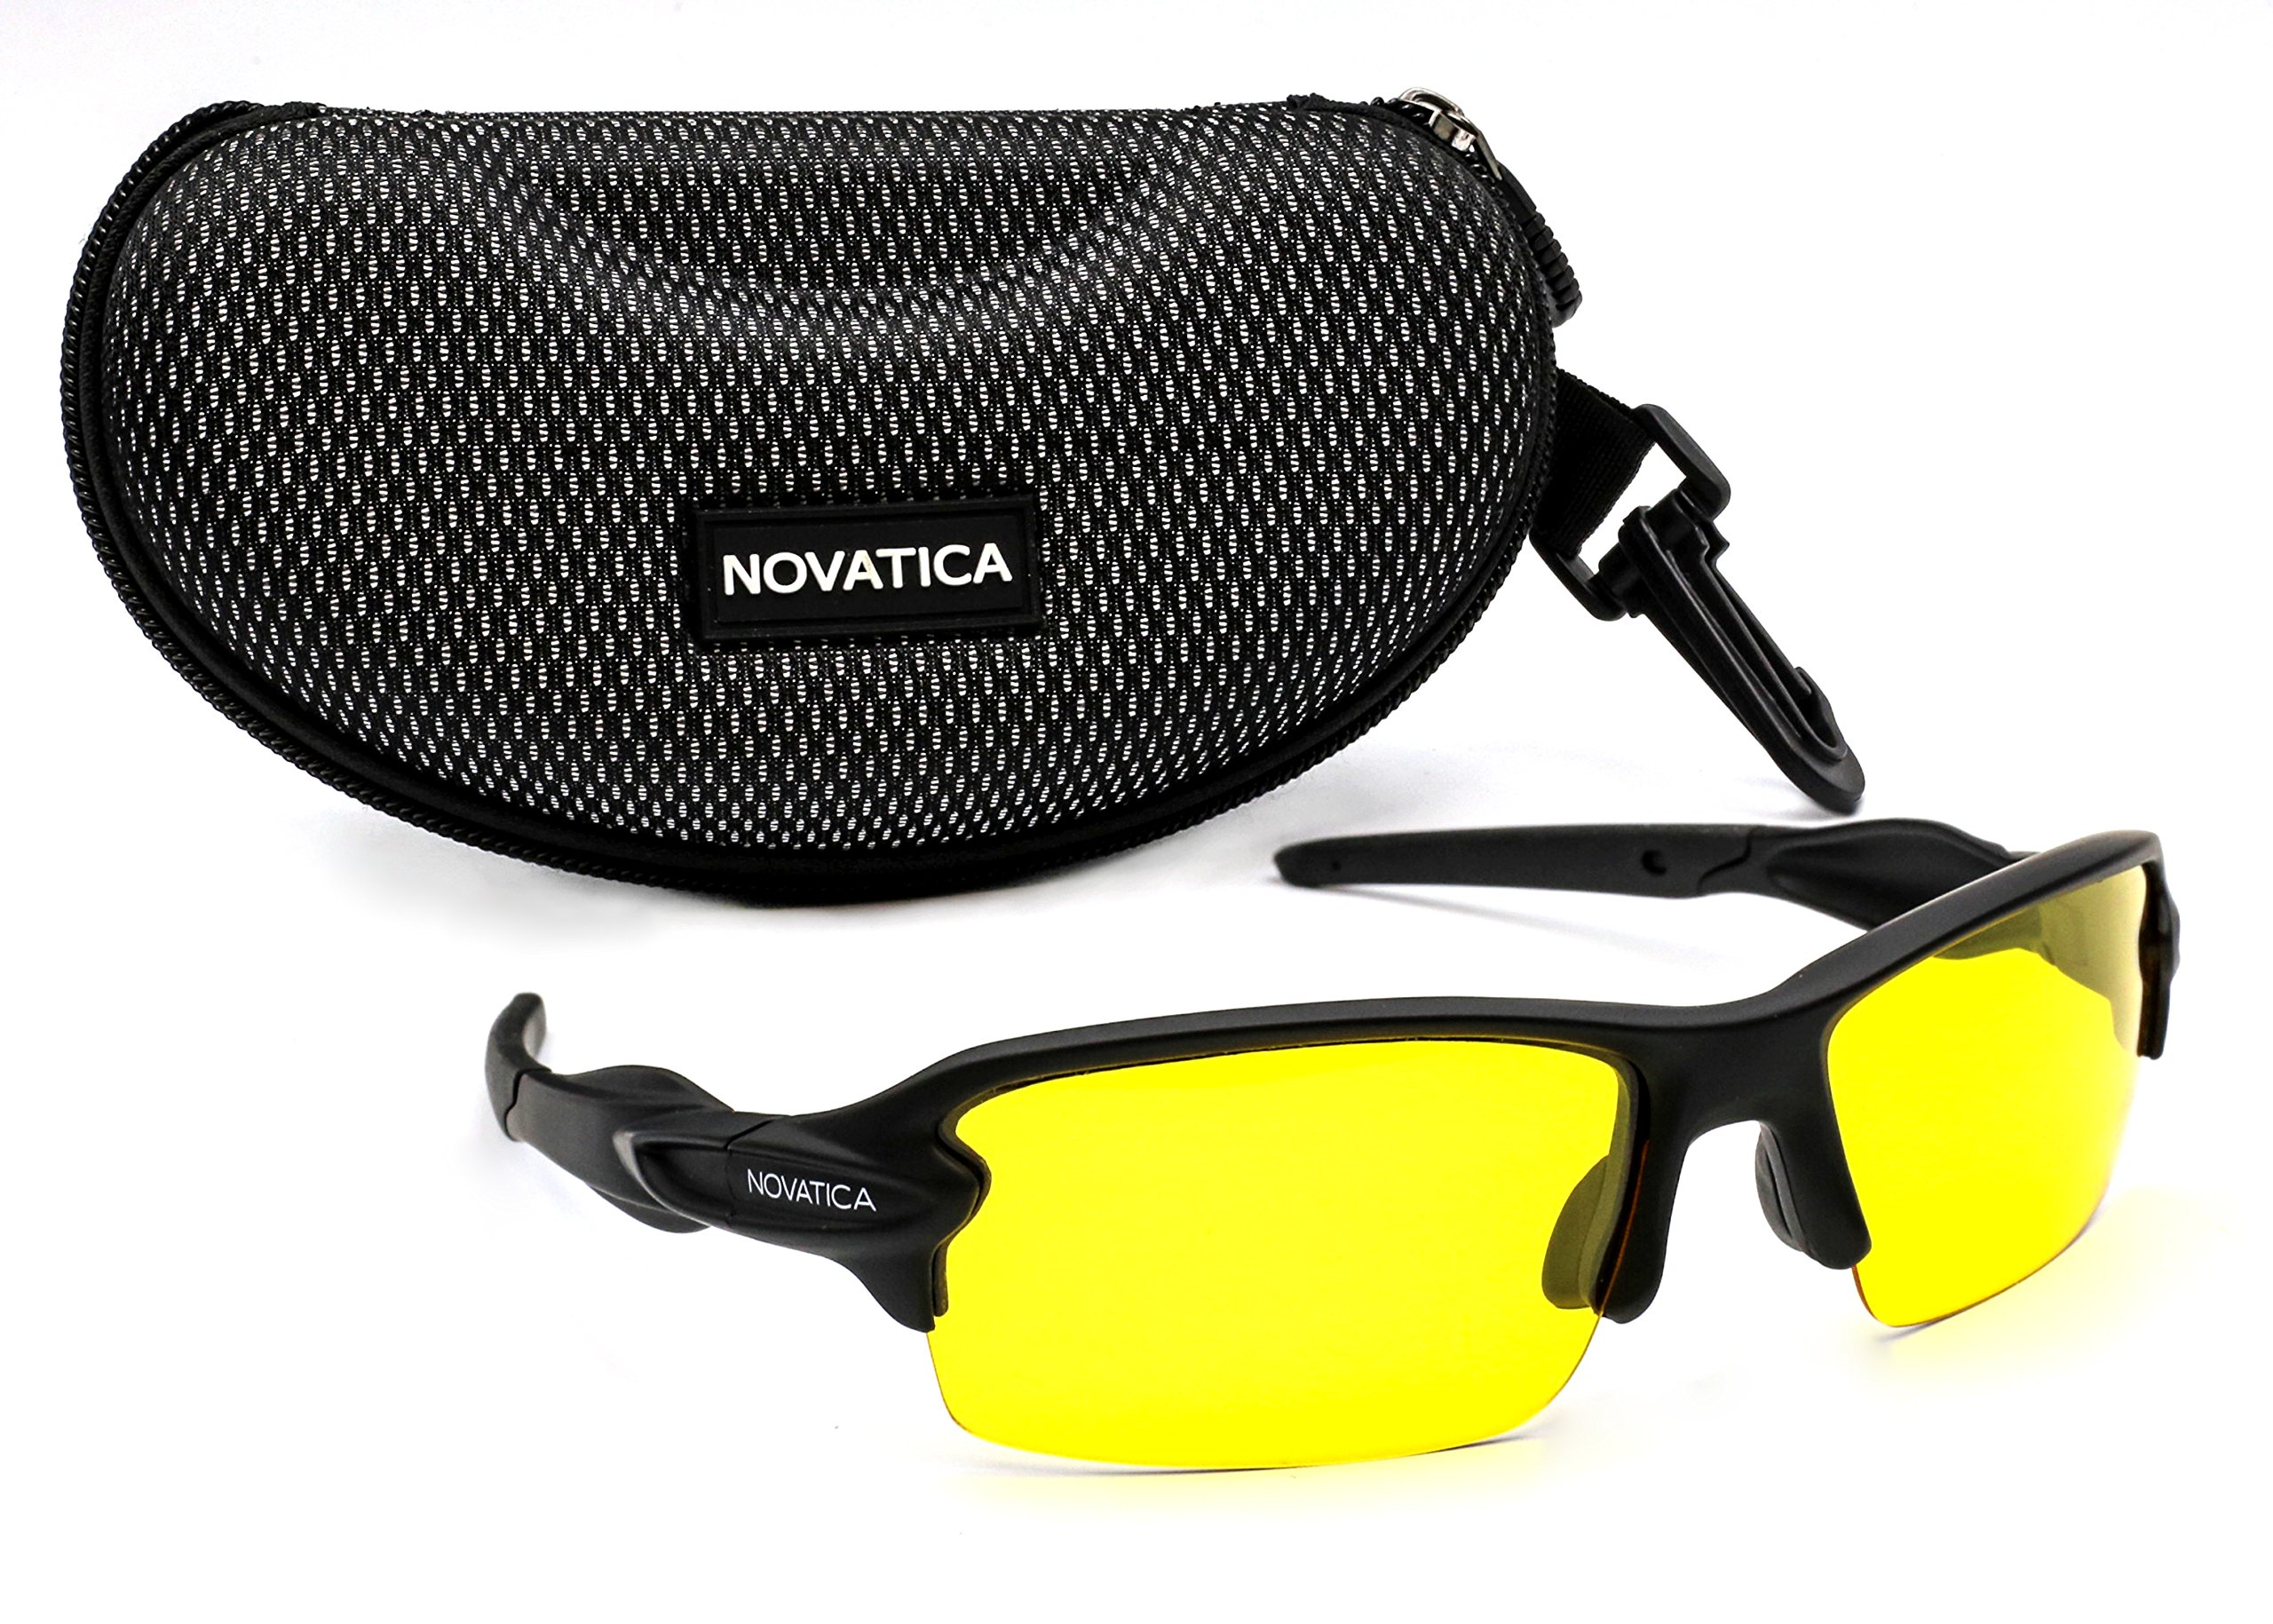 NOVATICA Anti-Glare Night Driving Polarized TAC Glasses – HD Vision - UV 400 Protection - Sport Sunglasses for Men and Women – Yellow Lenses and Durable TR 90 Frame for Outdoors and Accessories by NOVATICA